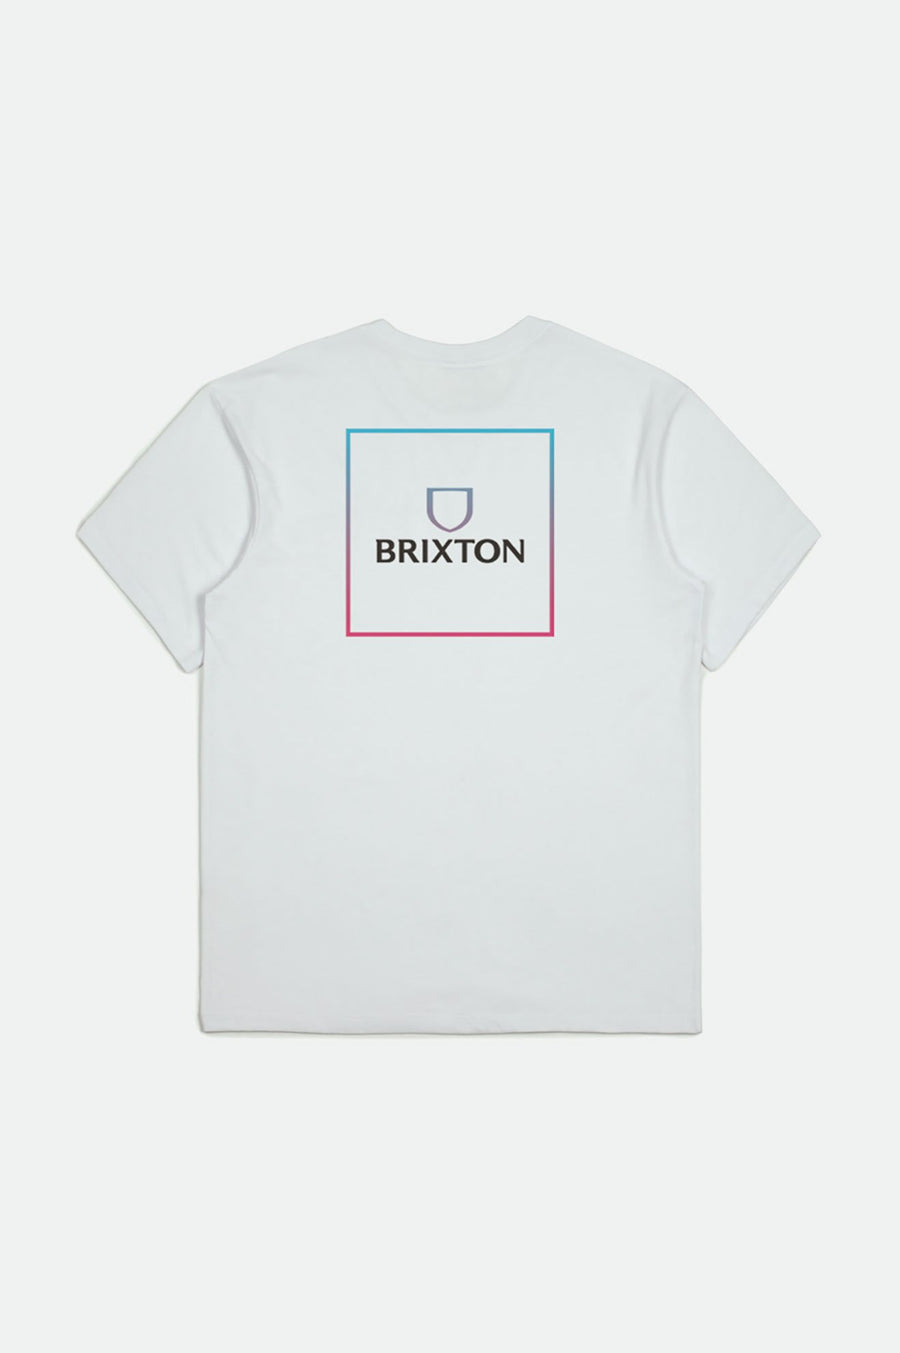 BRIXTON Alpha Square Standard T-Shirt White/ Light Blue/ Pink MENS APPAREL - Men's Short Sleeve T-Shirts Brixton M